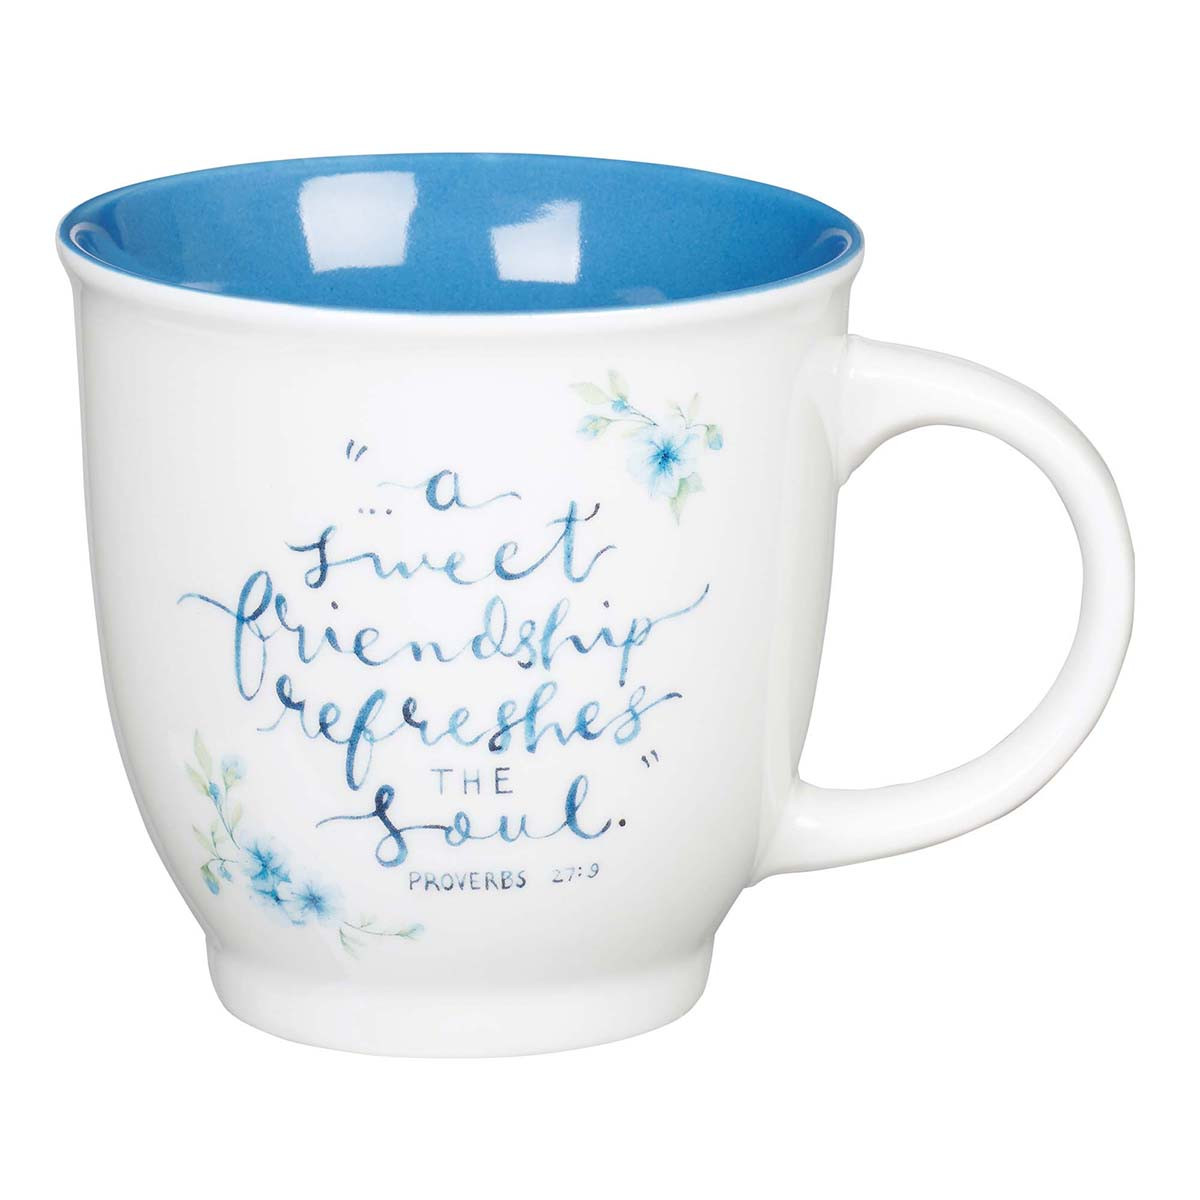 Proverbs 27:9 A Sweet Friendship Refreshes The Soul (Ceramic Mug)